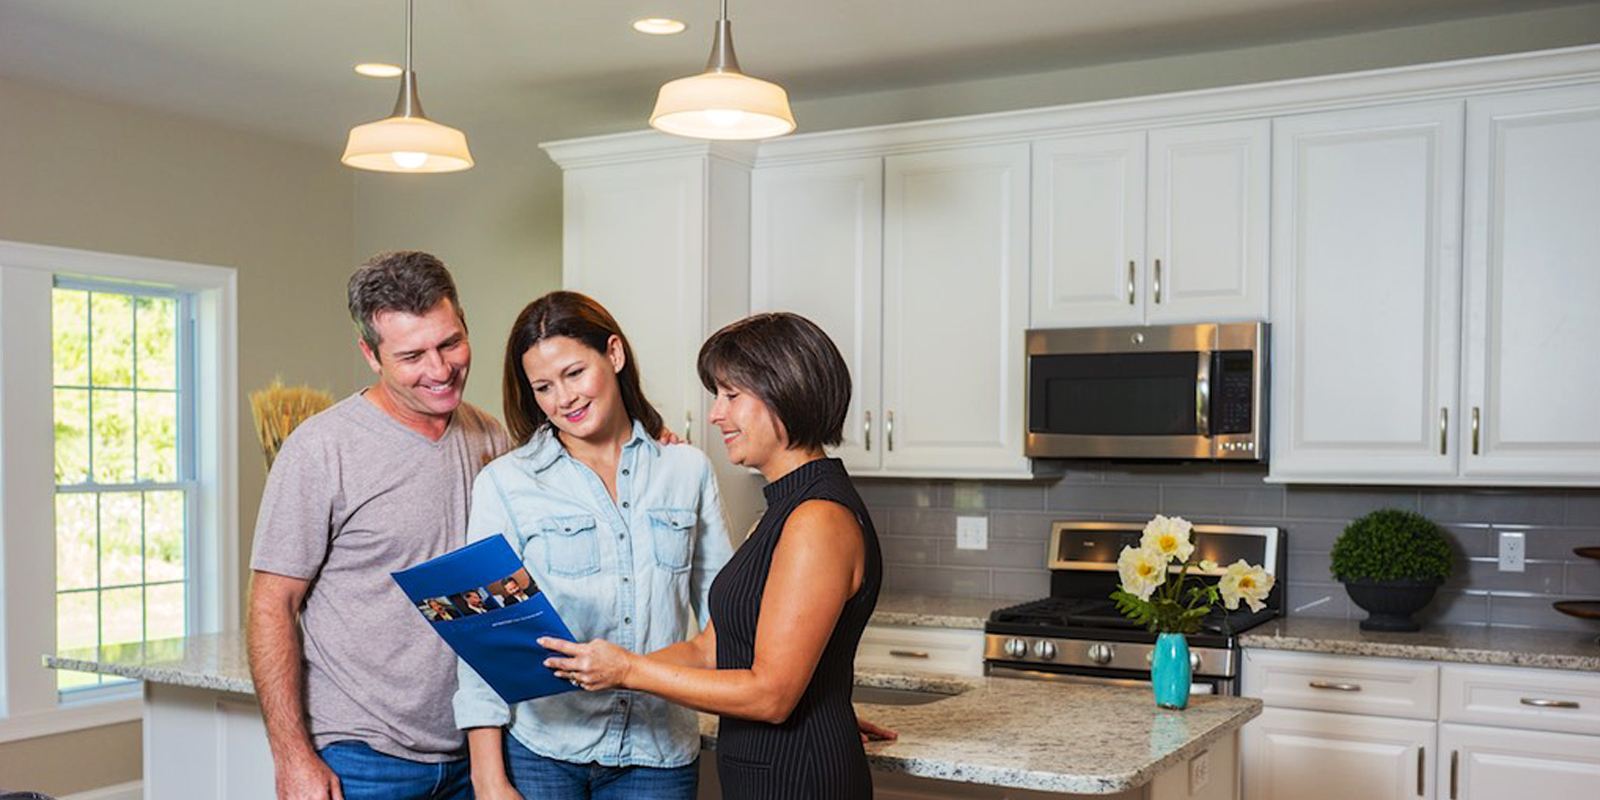 Mover with happy couple in kitchen